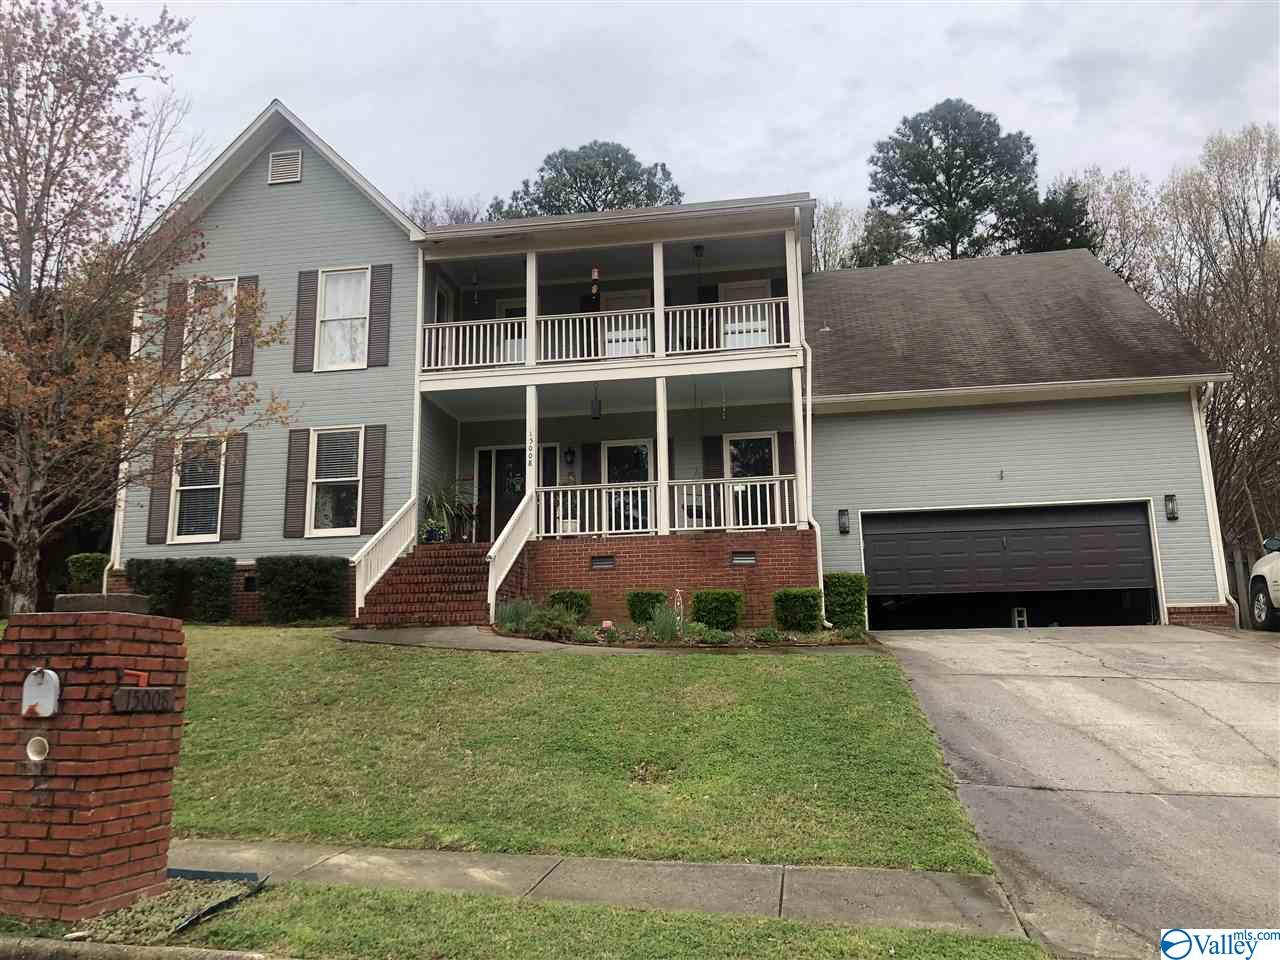 LARGE 5BR, 2.5BA FAMILY HOME in South Hsv!! over 3700 SF home with large family room with hardwoods and fireplace, formal living and dining rooms also with wood floors, eat in kitchen with granite counters, covered front porch, balcony at second level, plus screened deck, and sun deck to enjoy the private, treed back yard with privacy fence, master suite is huge and has glamour bath and walk in closet, 4 additional bedrooms are also spacious, 5th BR could serve as a large bonus room, 2 car garage, do not miss out on this one!!